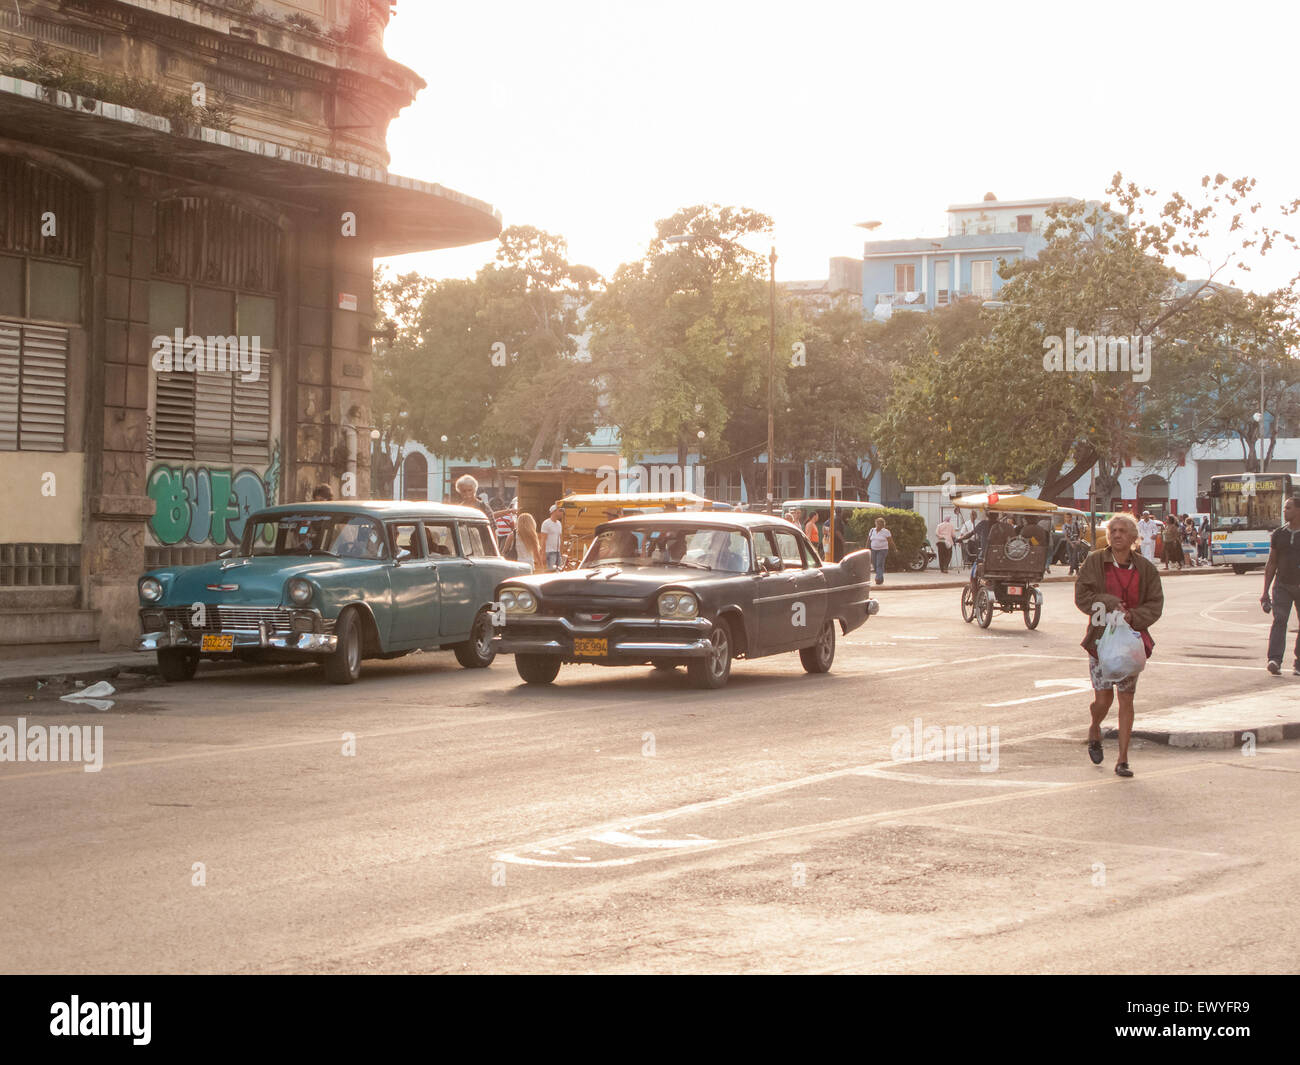 Oldtimer car on the street of Havana, Cuba. - Stock Image